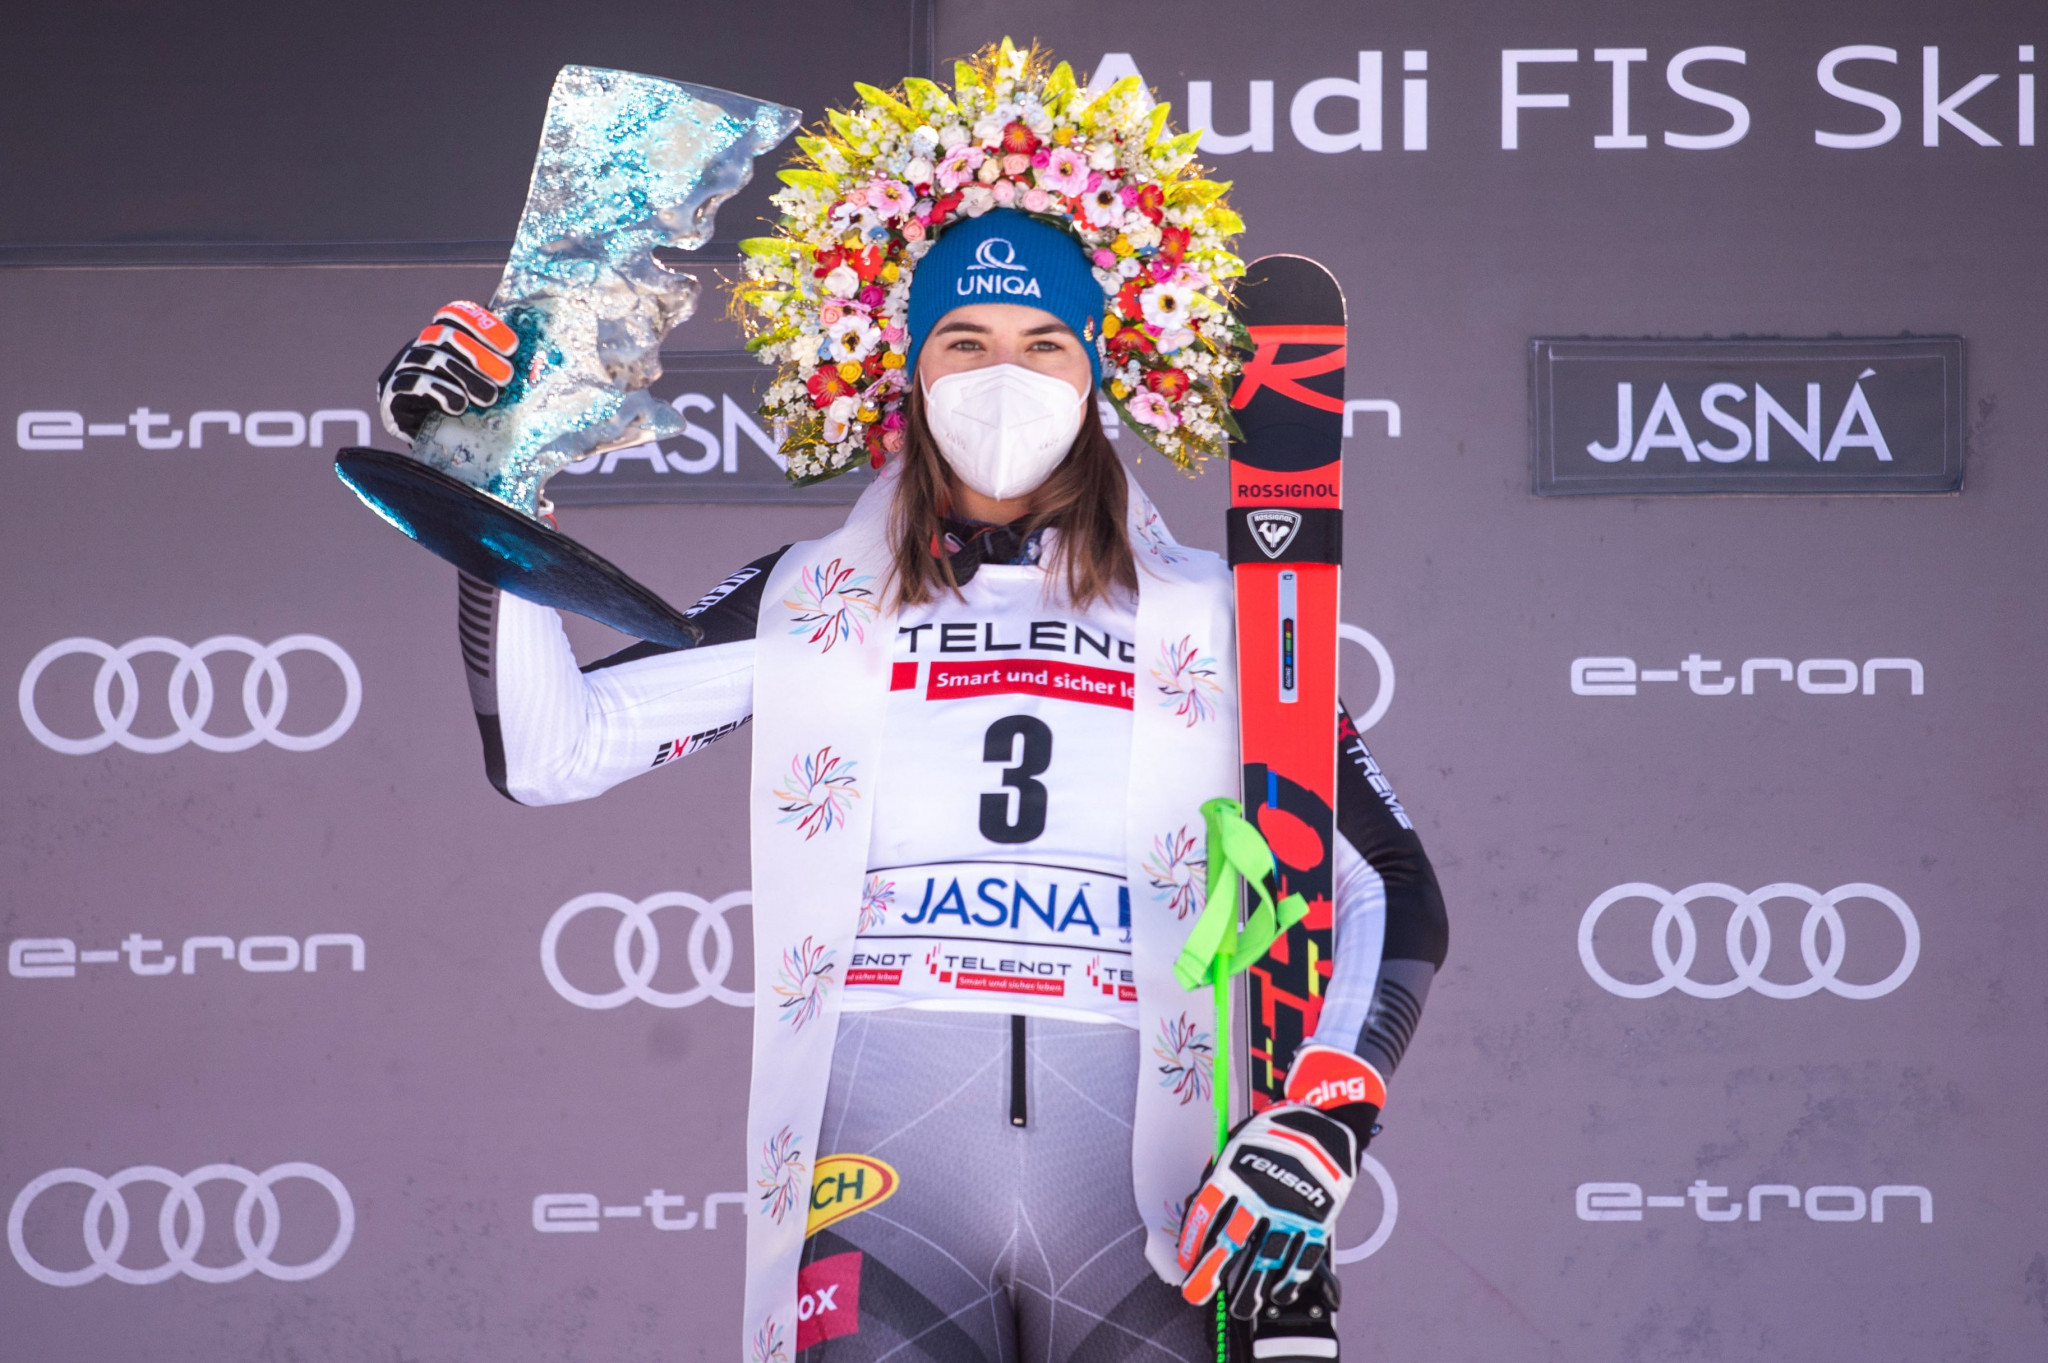 Vlhová returns to winning ways on home snow and cuts gap to World Cup leader Gut-Behrami